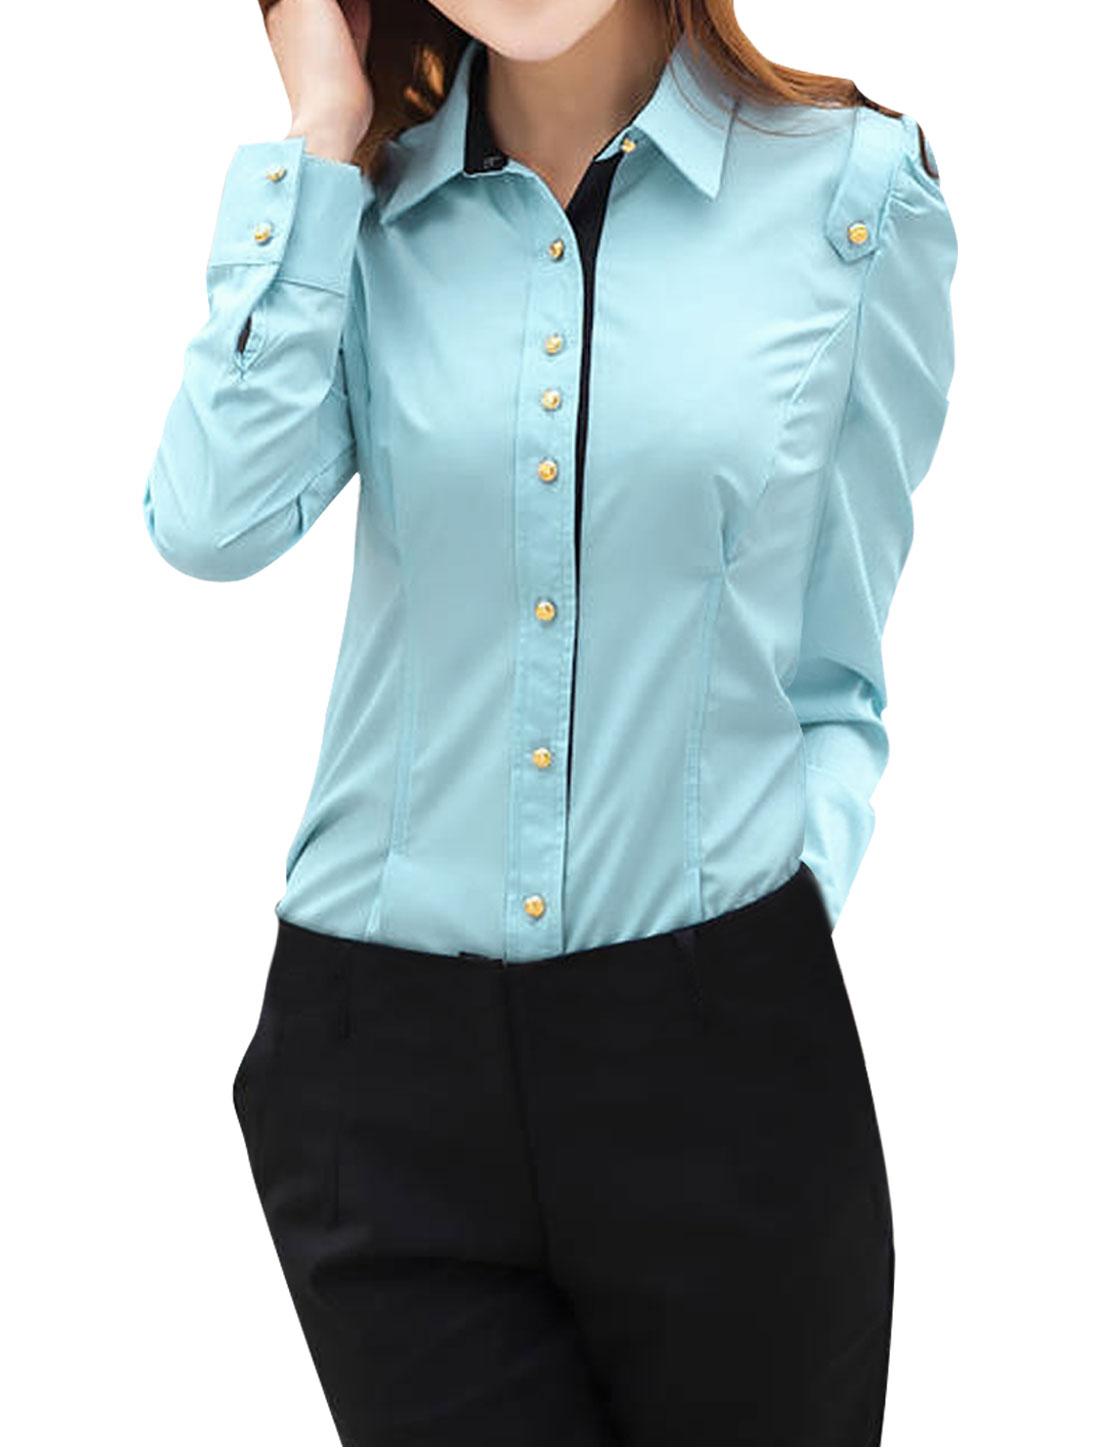 Ladies Single Breasted Buttoned Cuffs Casual Shirt Light Blue S